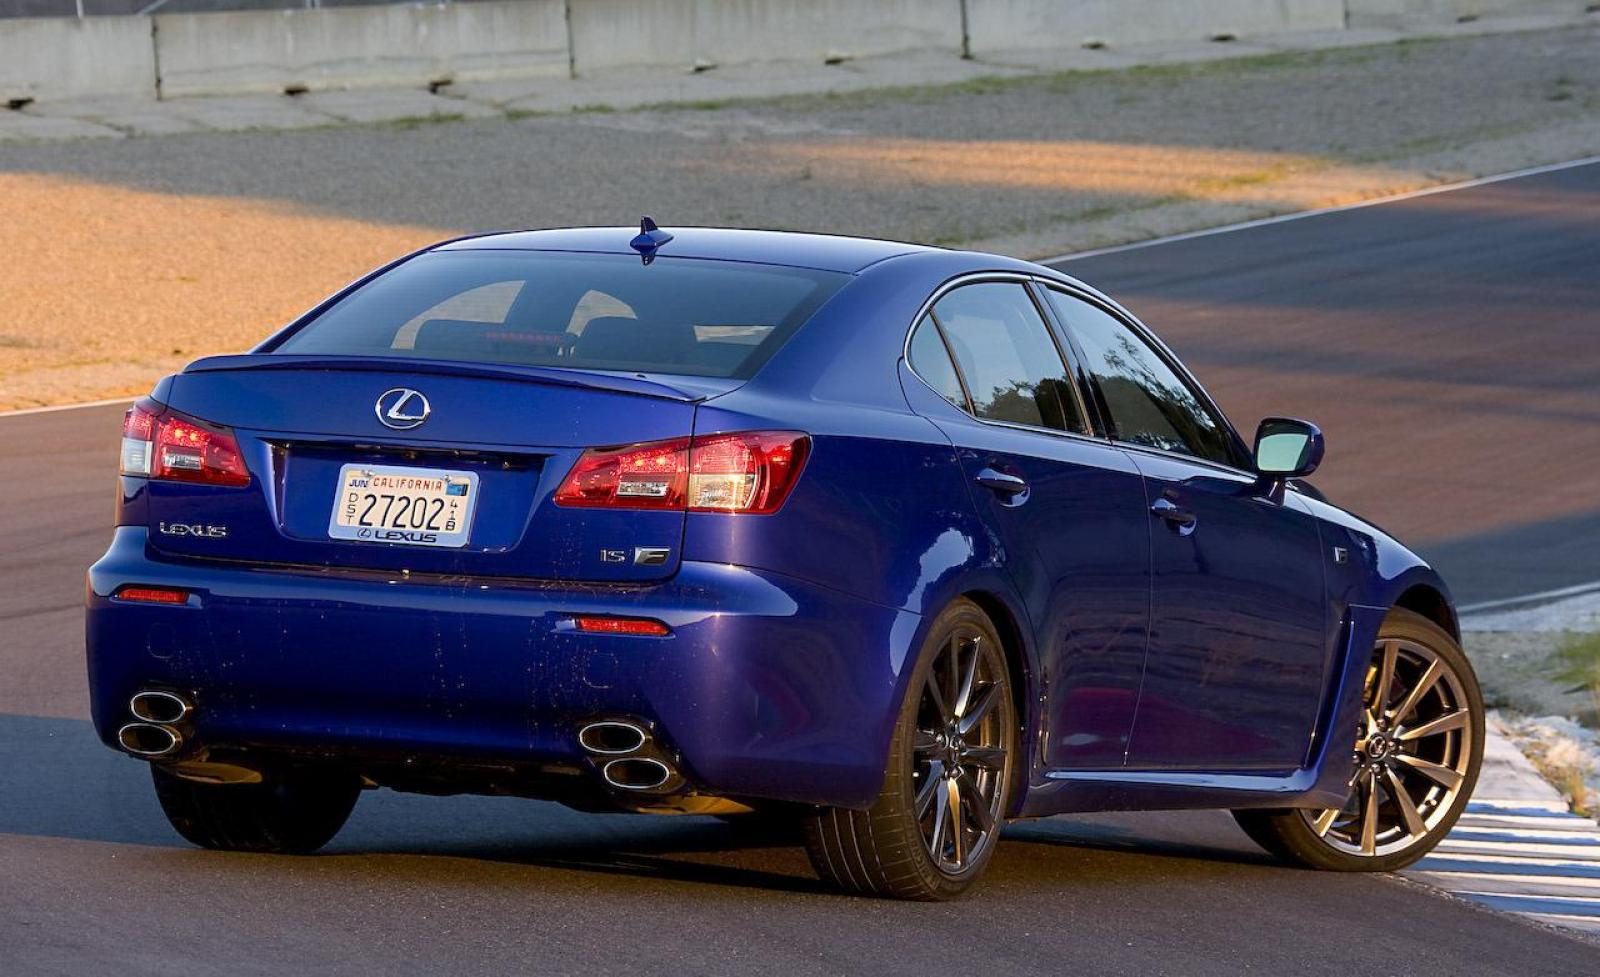 2008 lexus is f information and photos zombiedrive. Black Bedroom Furniture Sets. Home Design Ideas